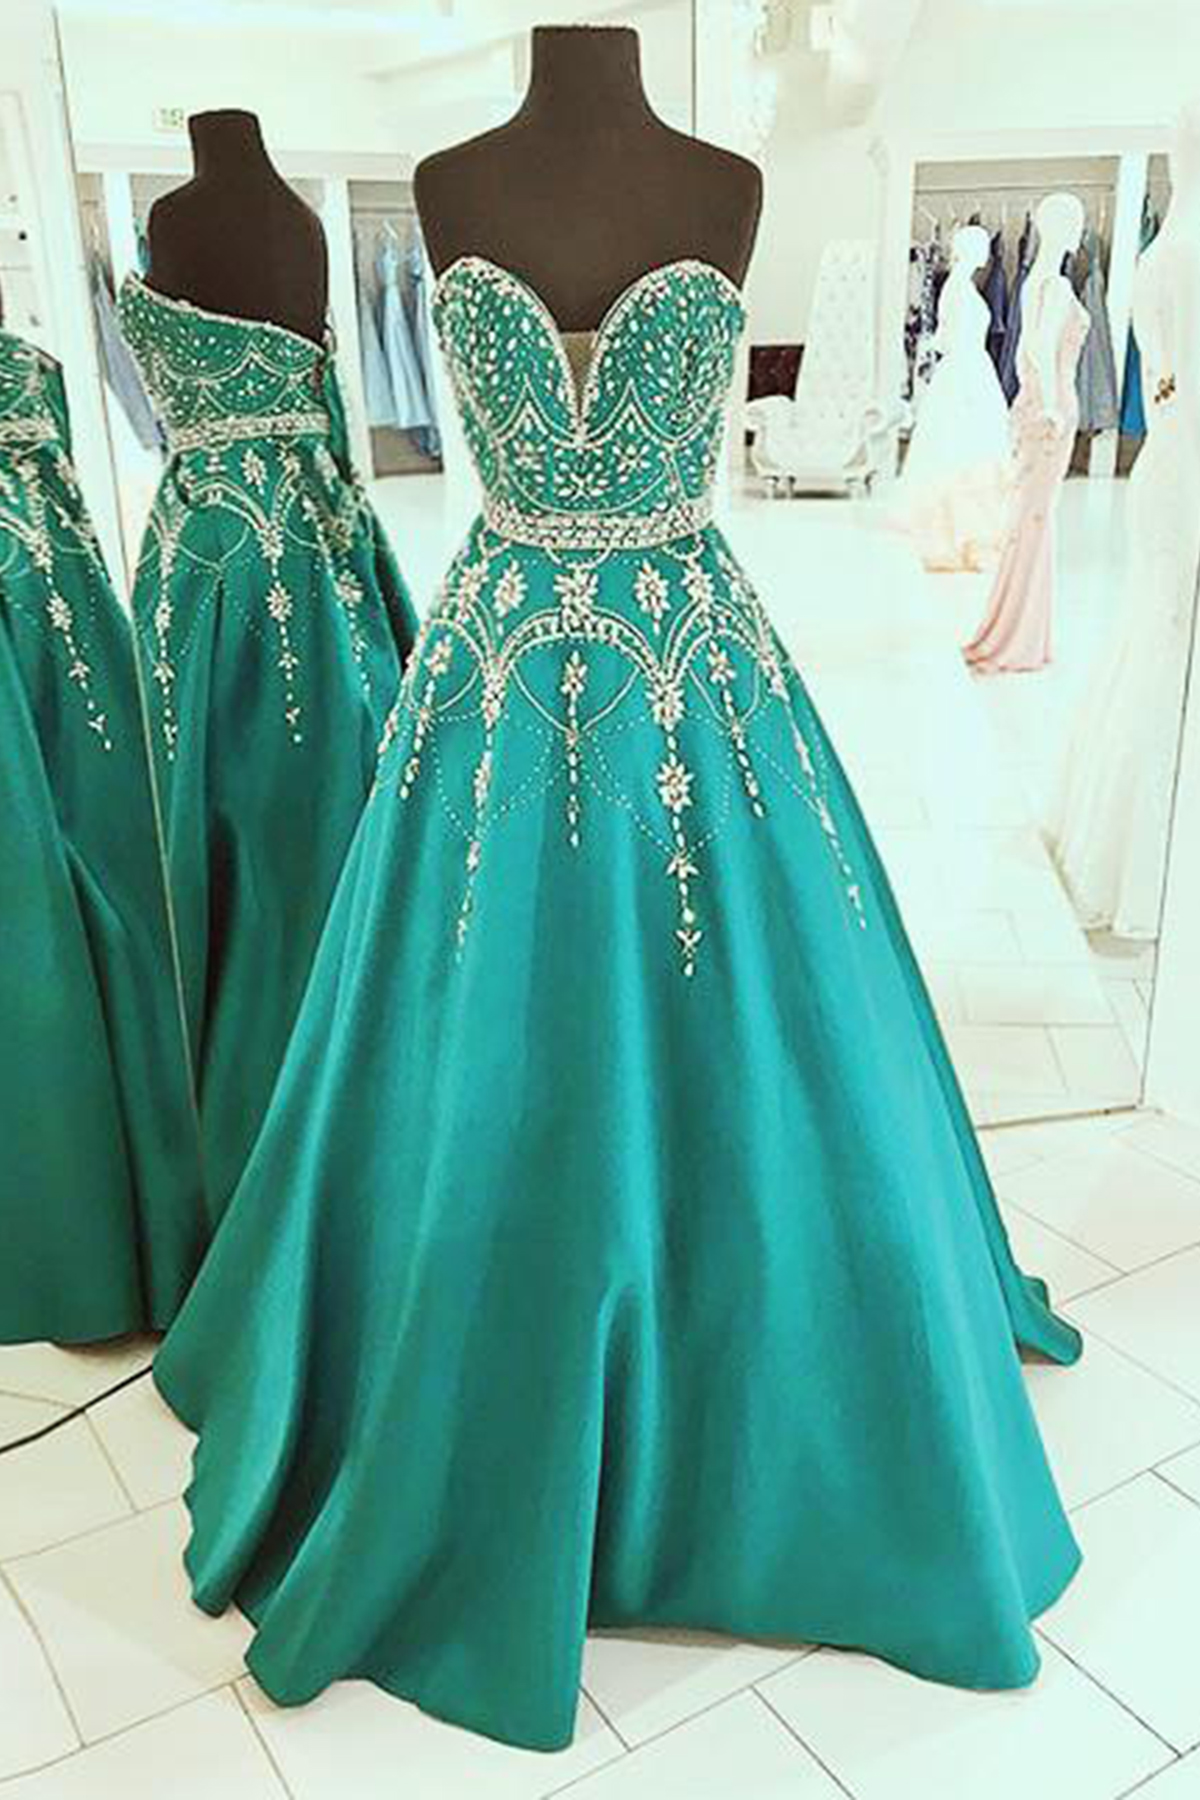 Green and Silver Evening Dresses